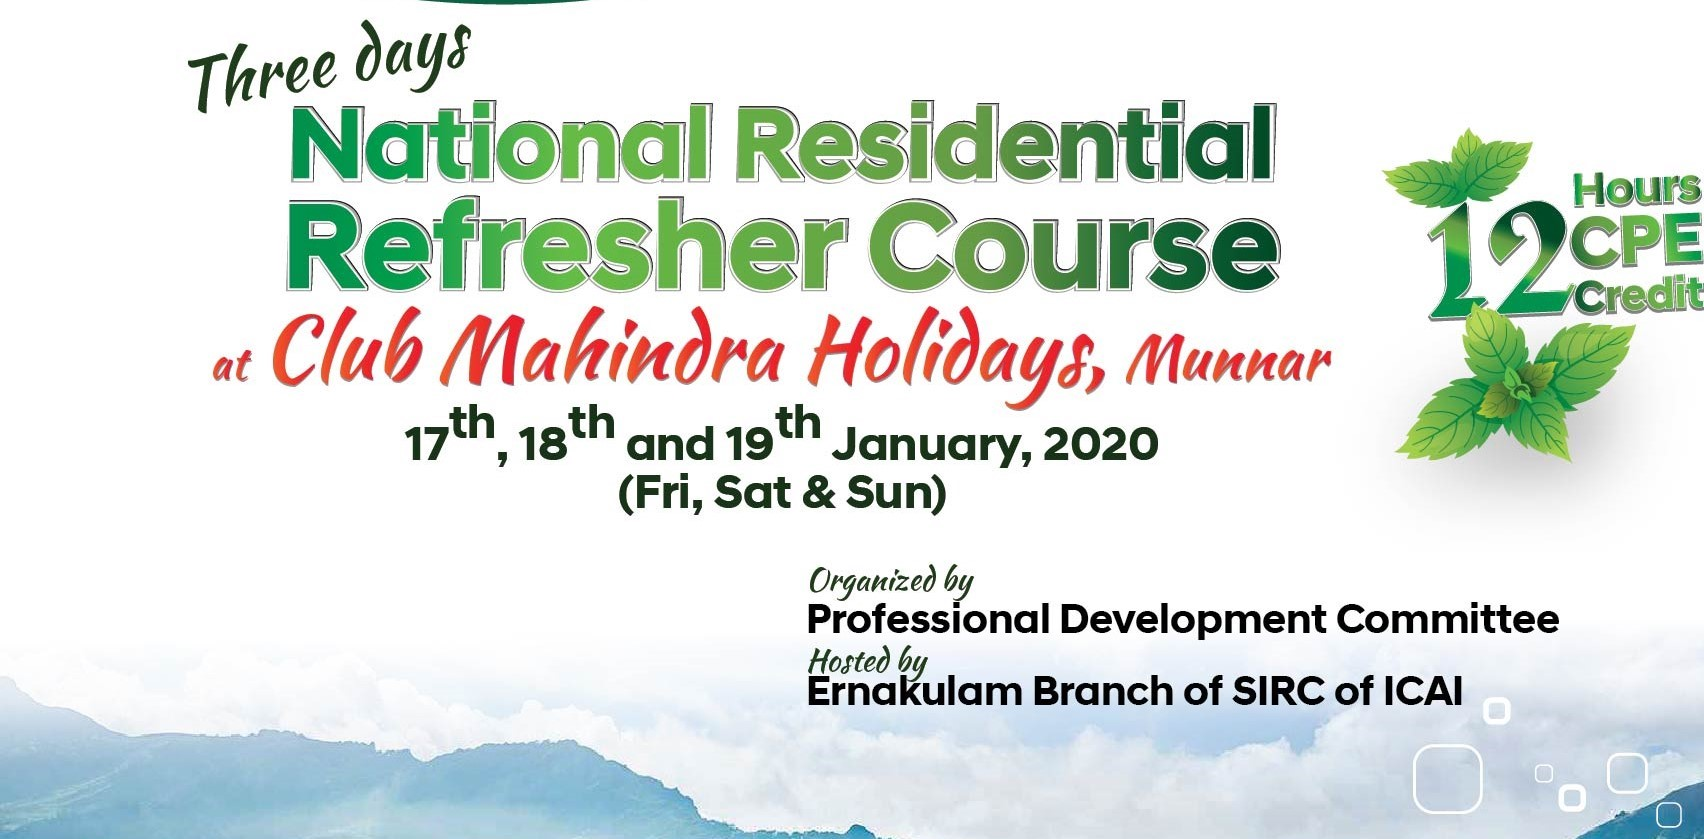 Three Days National Residential Seminar at Munnar